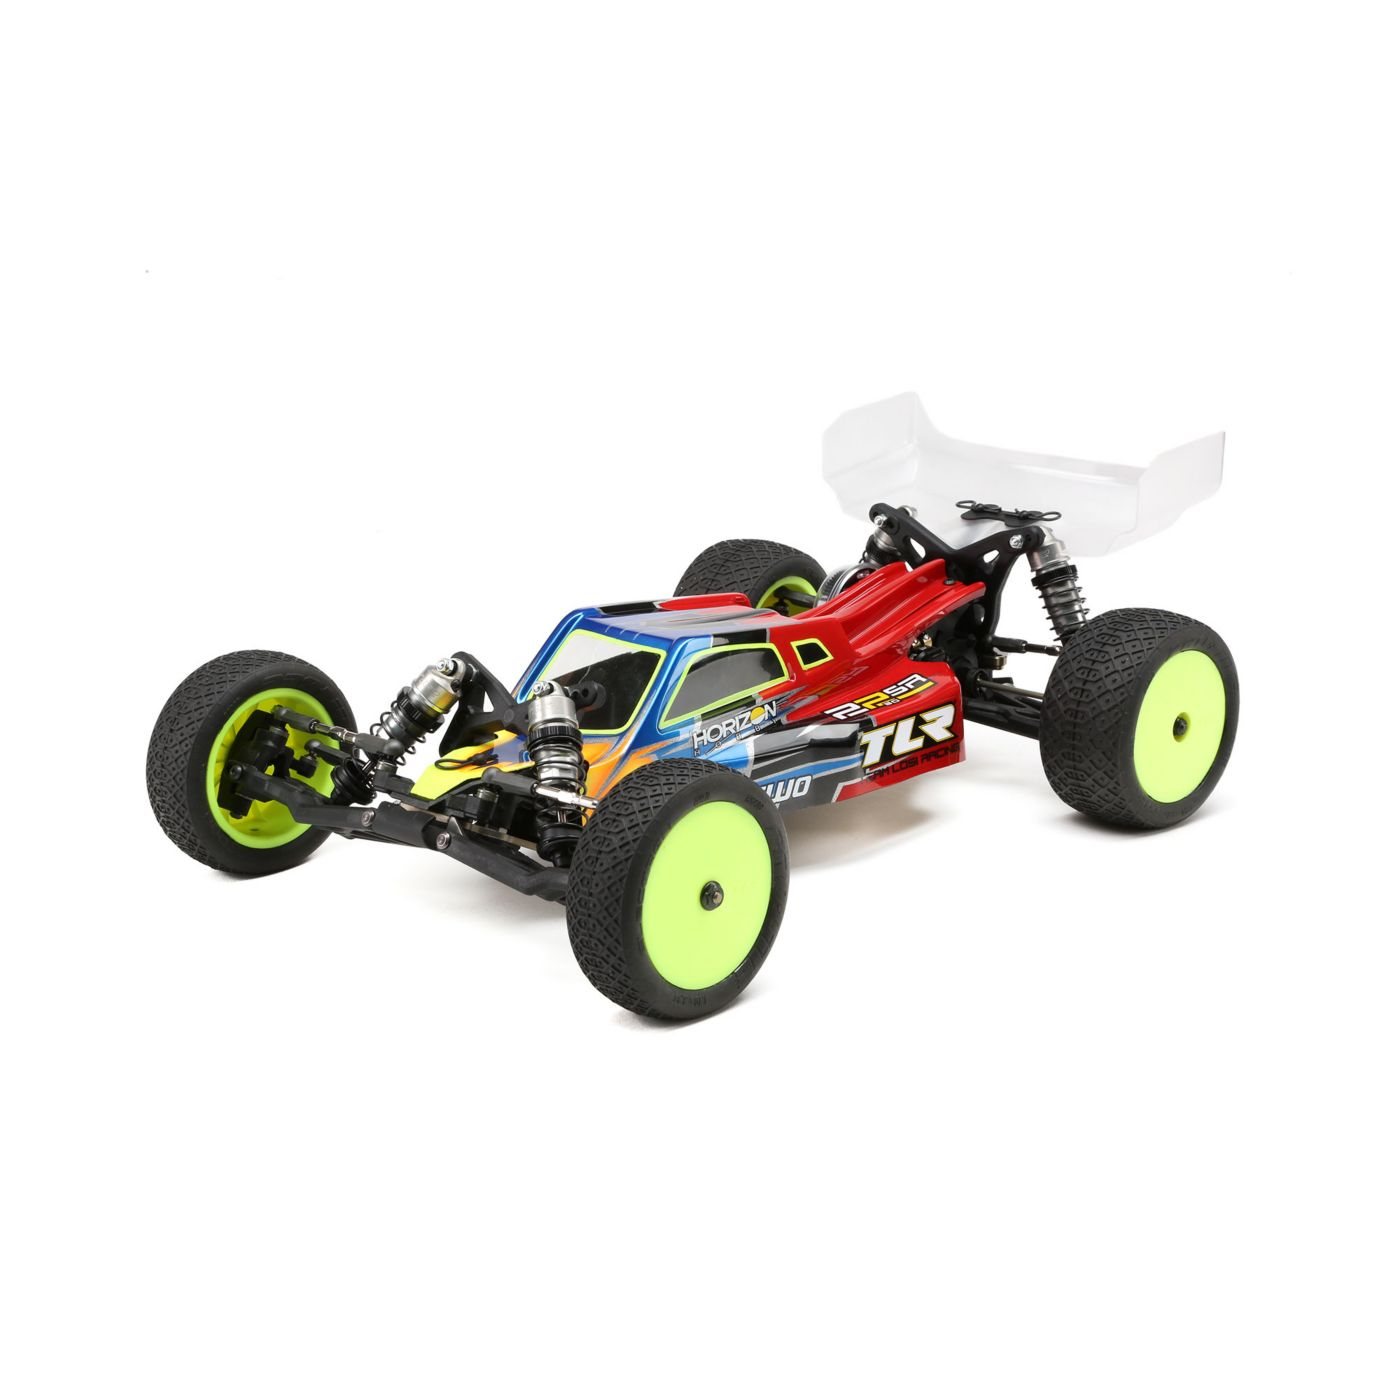 The 22 3.0 SPEC-Racer Buggy from TLR